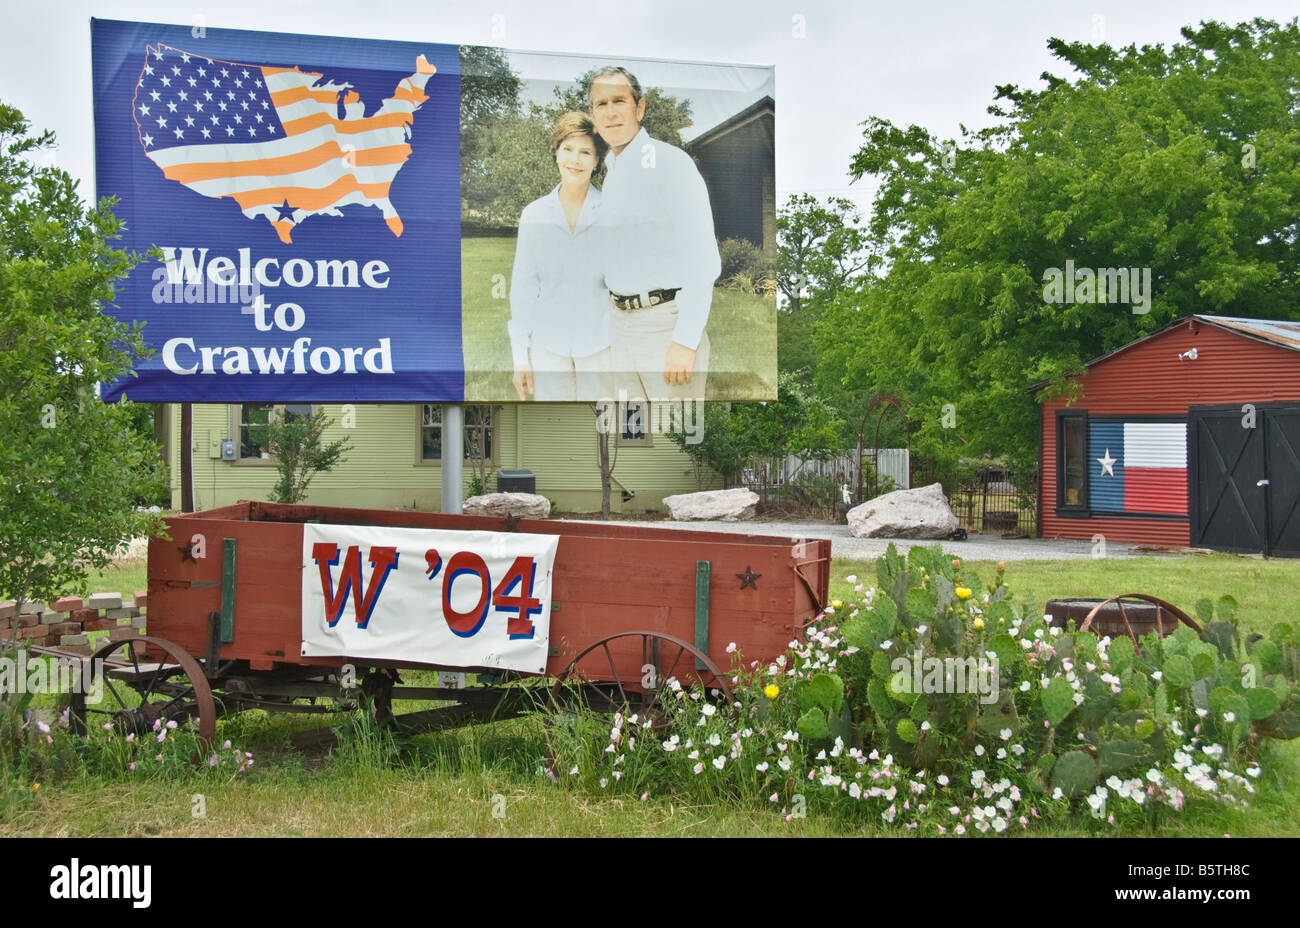 Texas Crawford Location Of President George W Bush Ranch Welcome